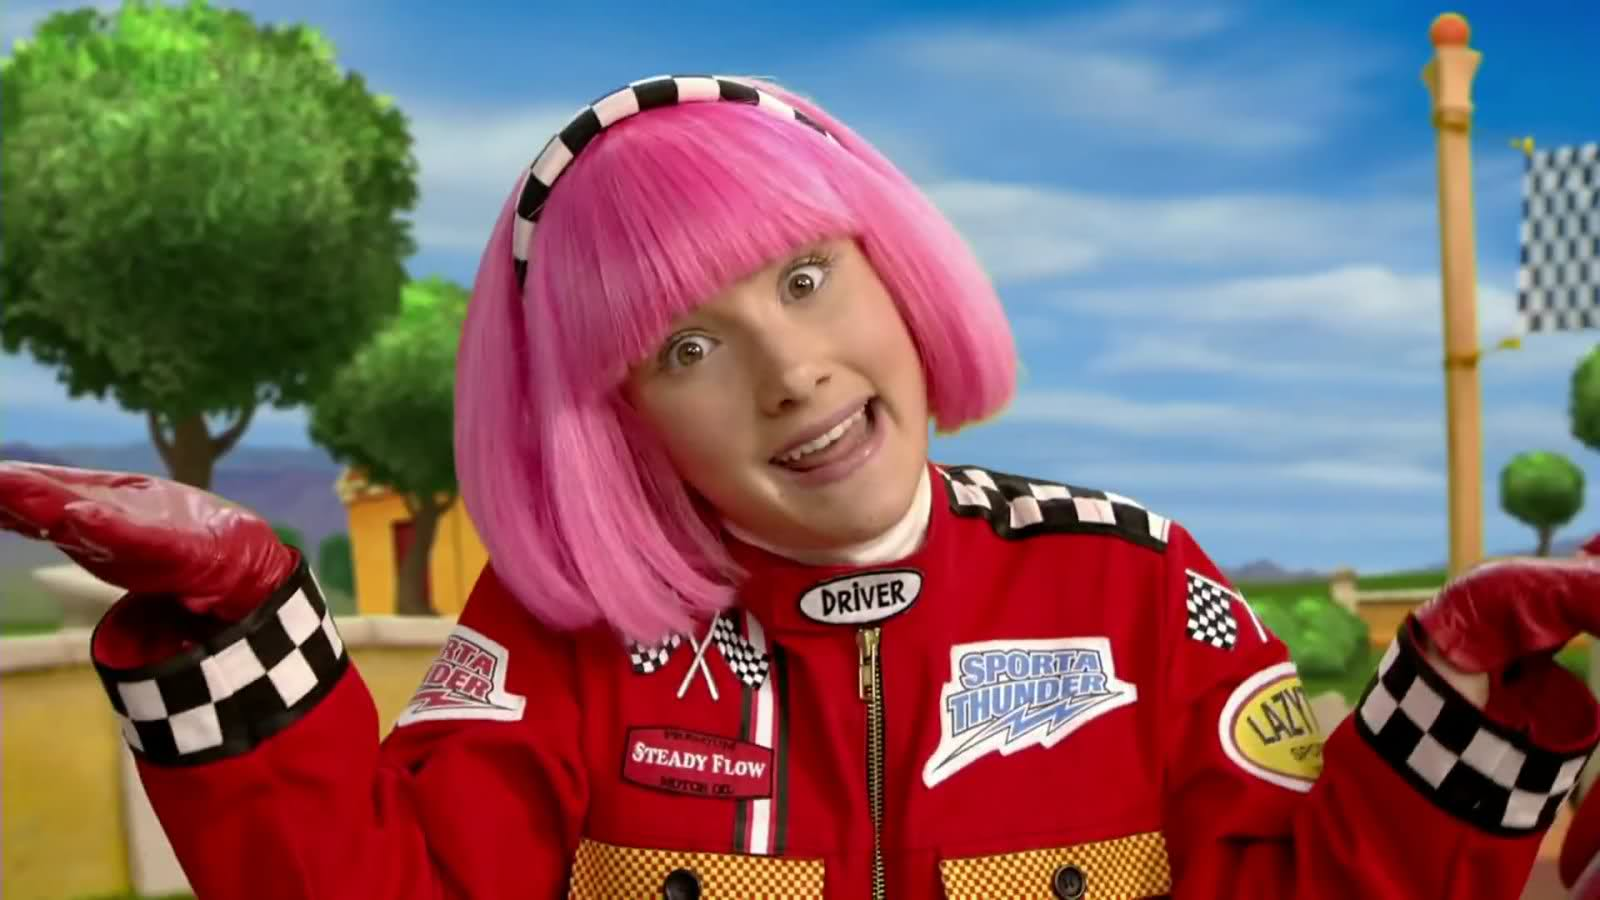 Lazytown Wallpaper And Background Image  1600X900  Id639495 - Wallpaper Abyss-8806